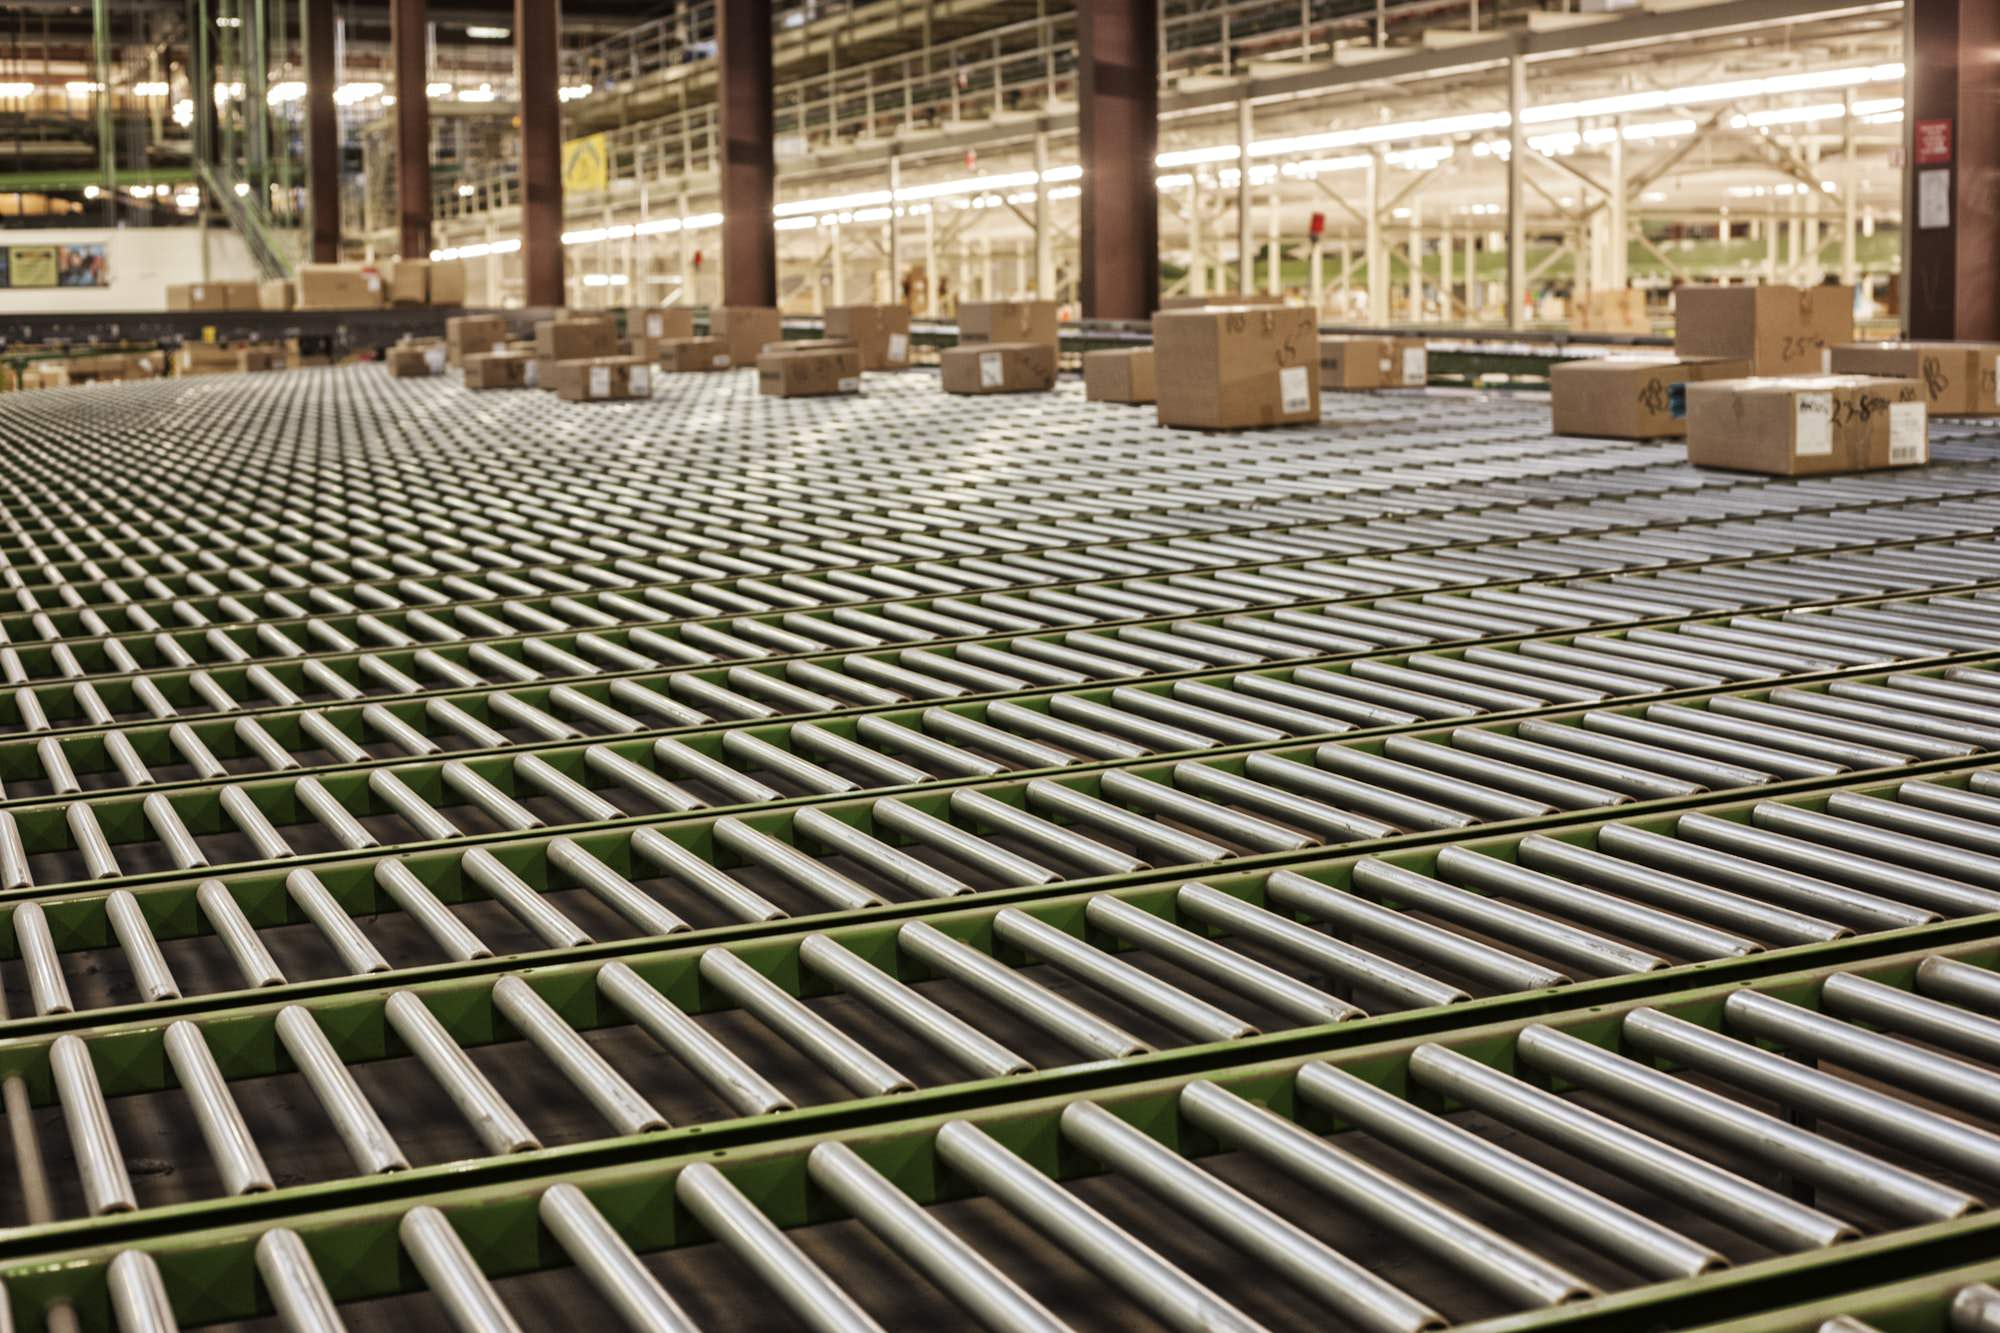 Interior view of a gravity feed conveyor system in a large distribution warehouse with products